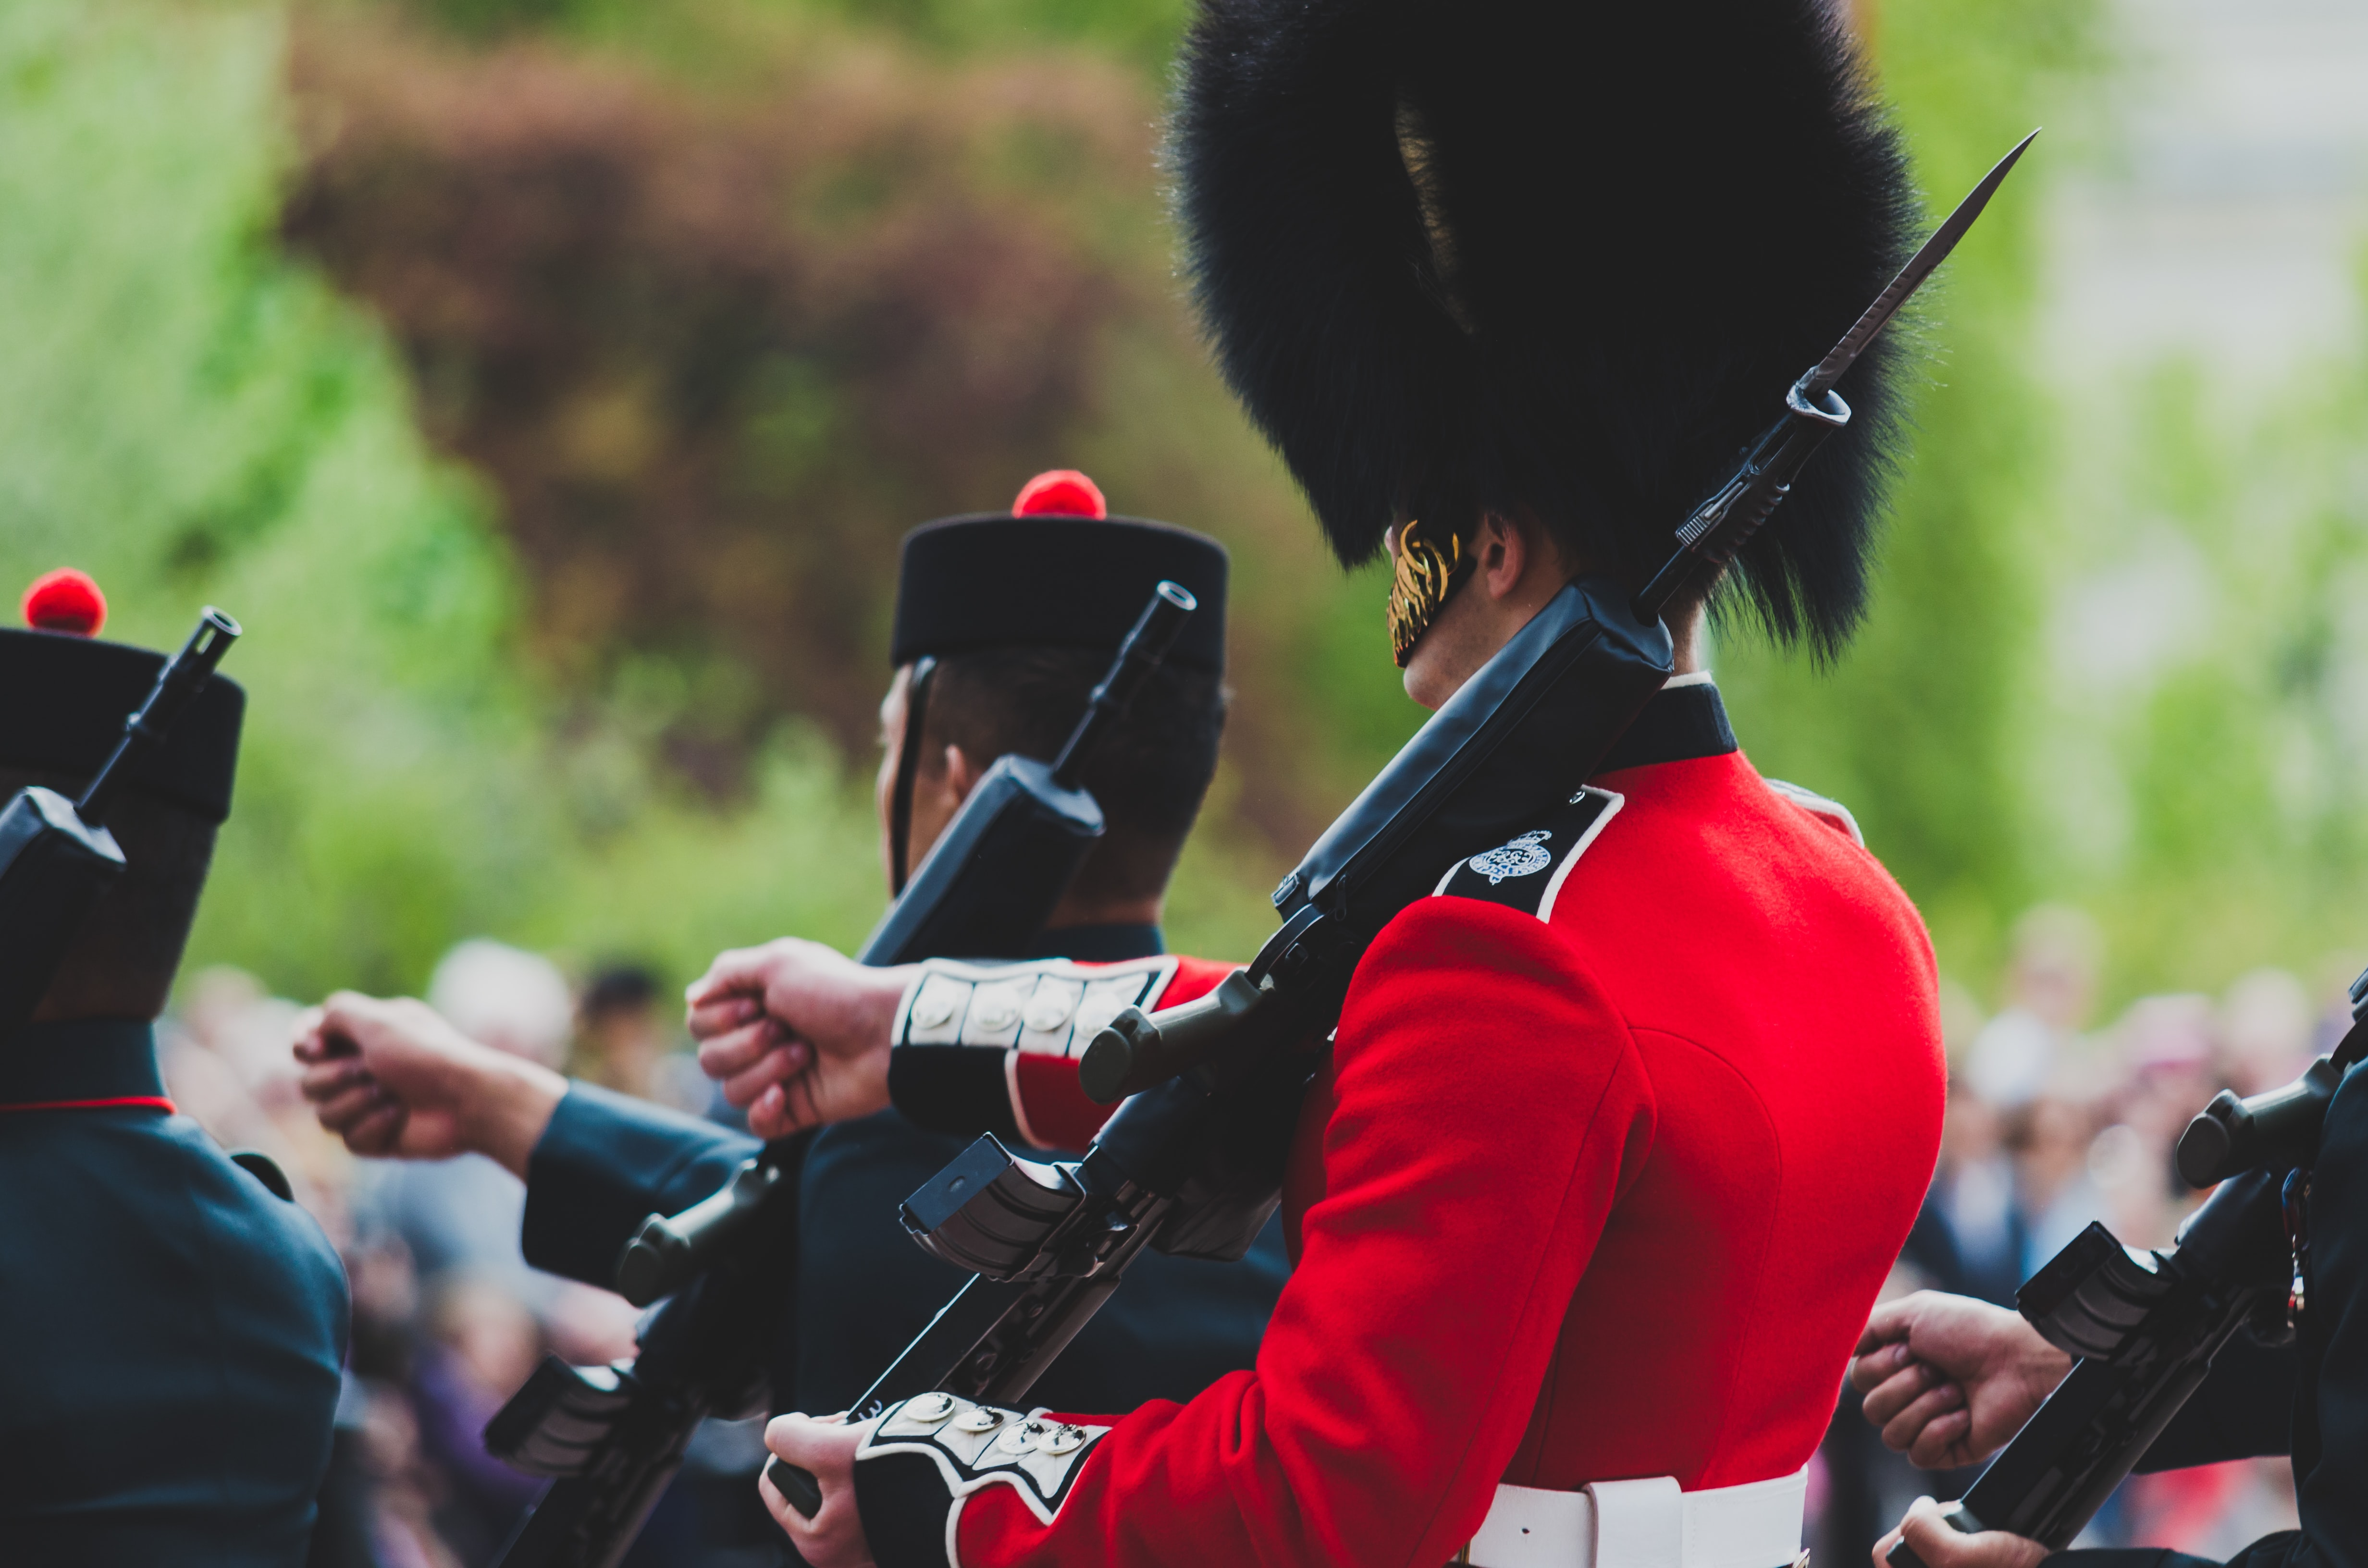 photography of royal guard marching